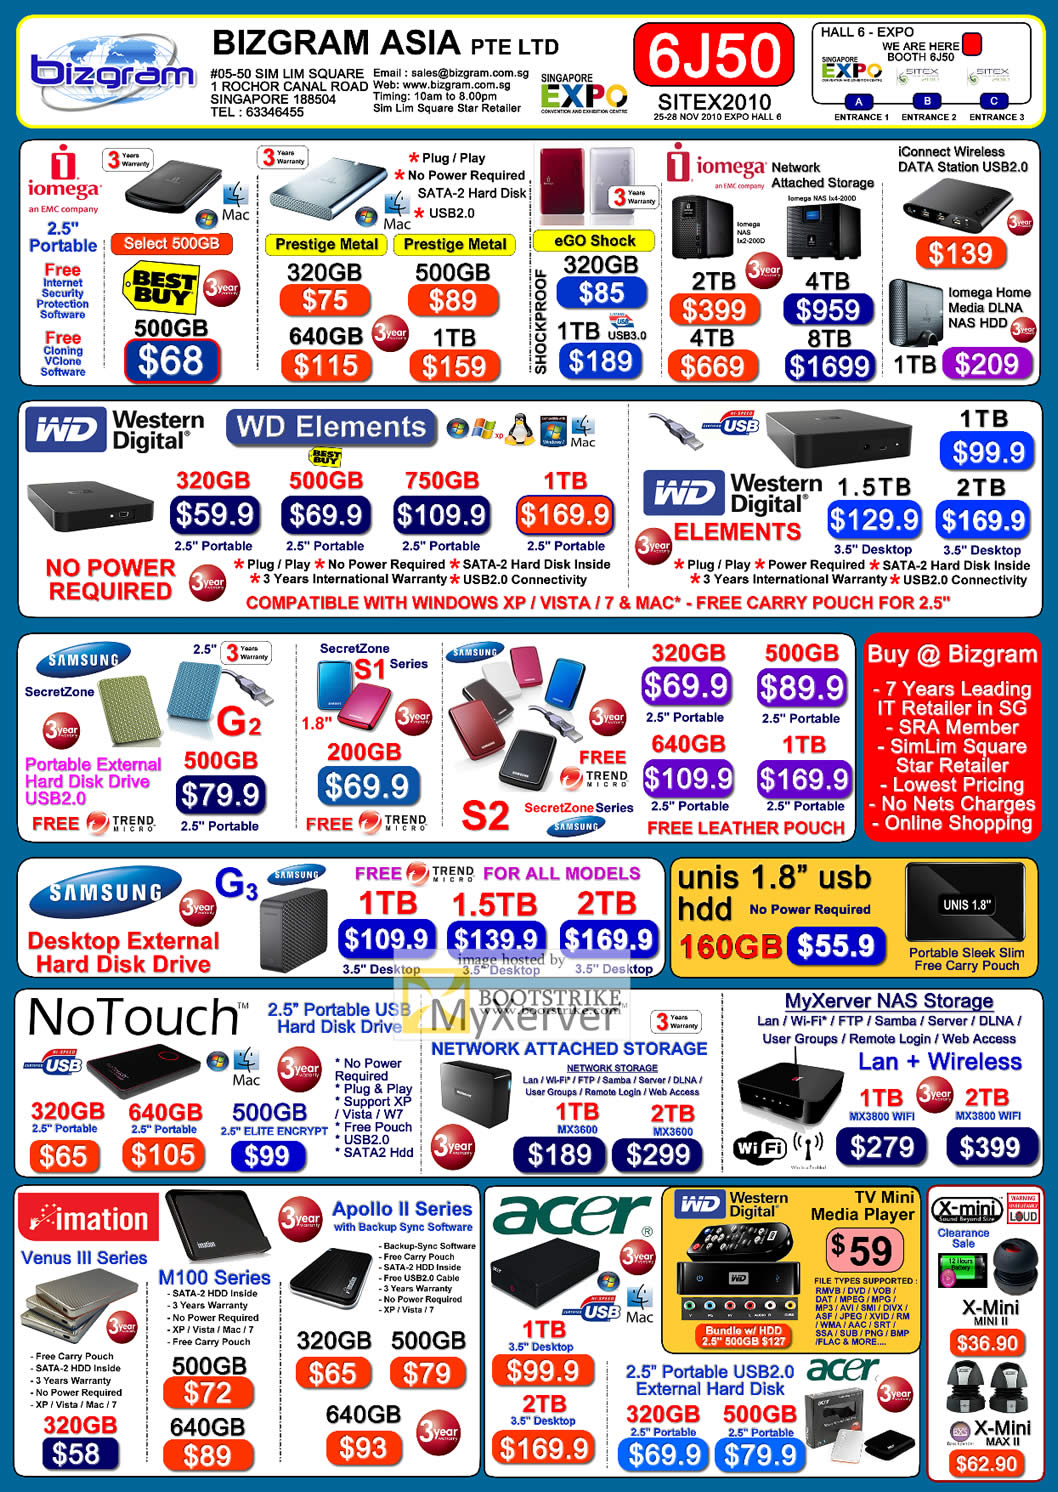 Sitex 2010 price list image brochure of Bizgram External Storage Iomega Prestige WD Elements Samsung G3 Unis NoTouch MyXerver NAS Imation Acer X Mini